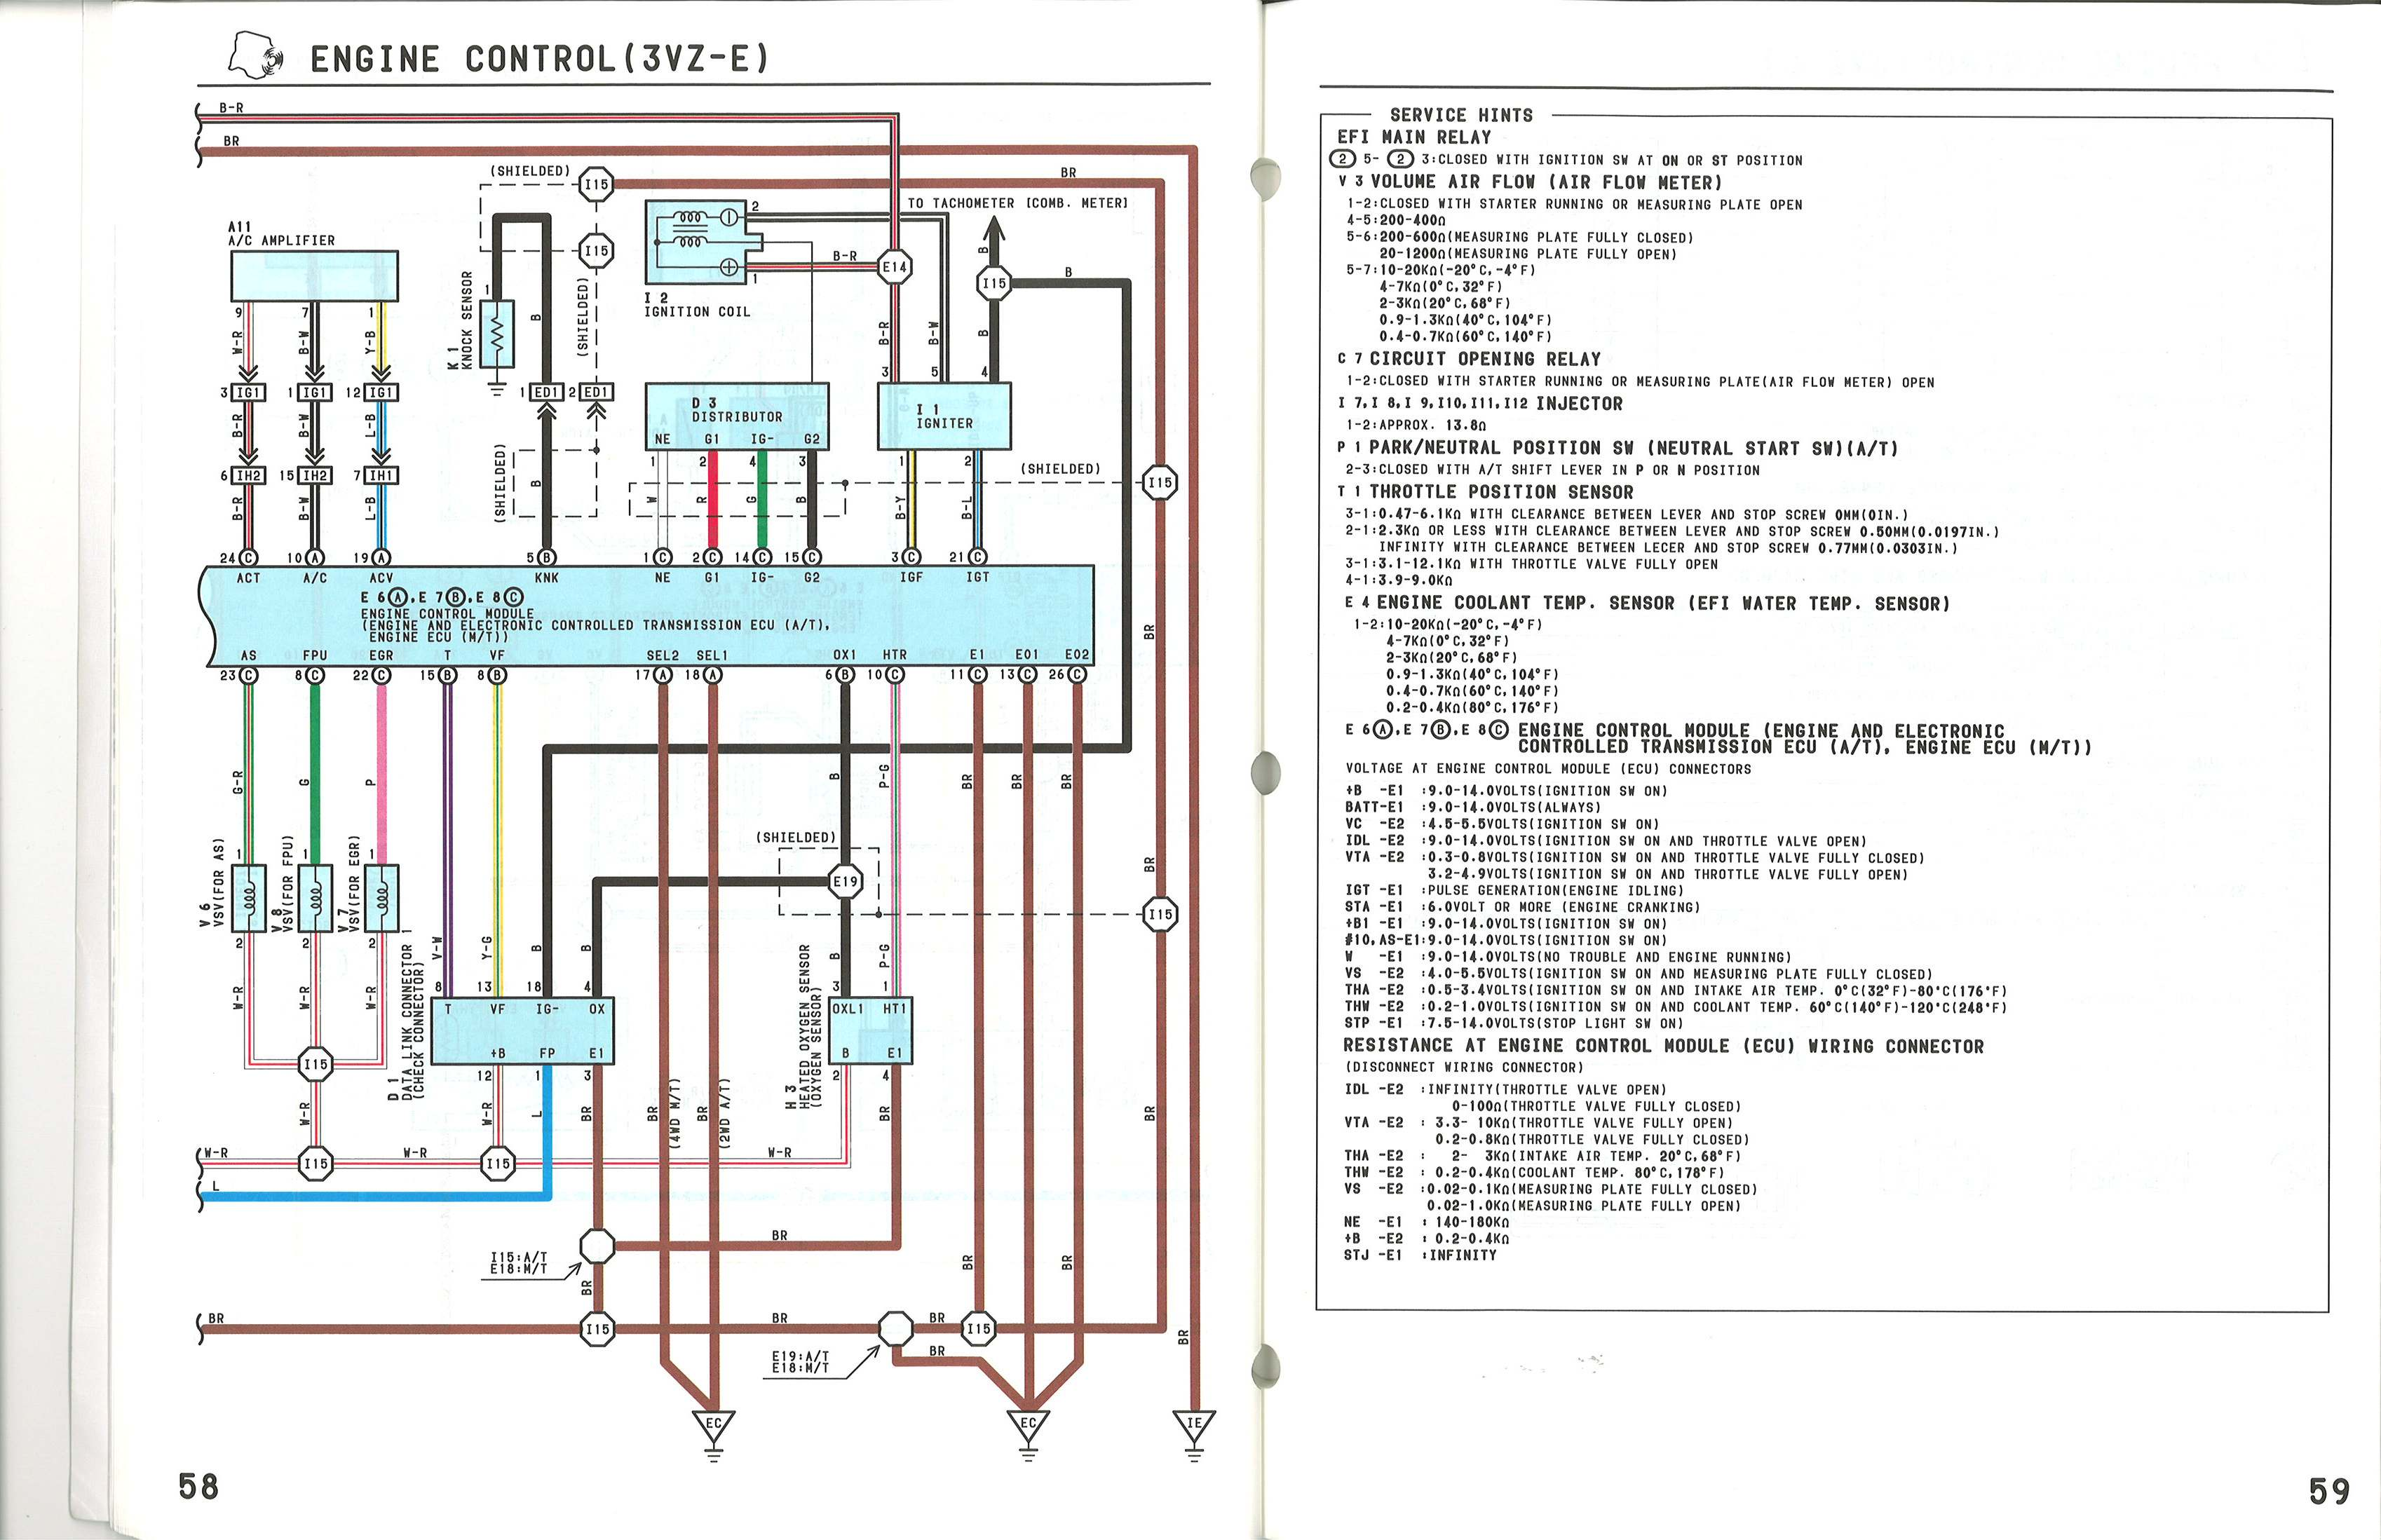 1992 Toyota Pickup Wiring Diagram: 3VZE ECU Pinout - YotaTech Forums,Design